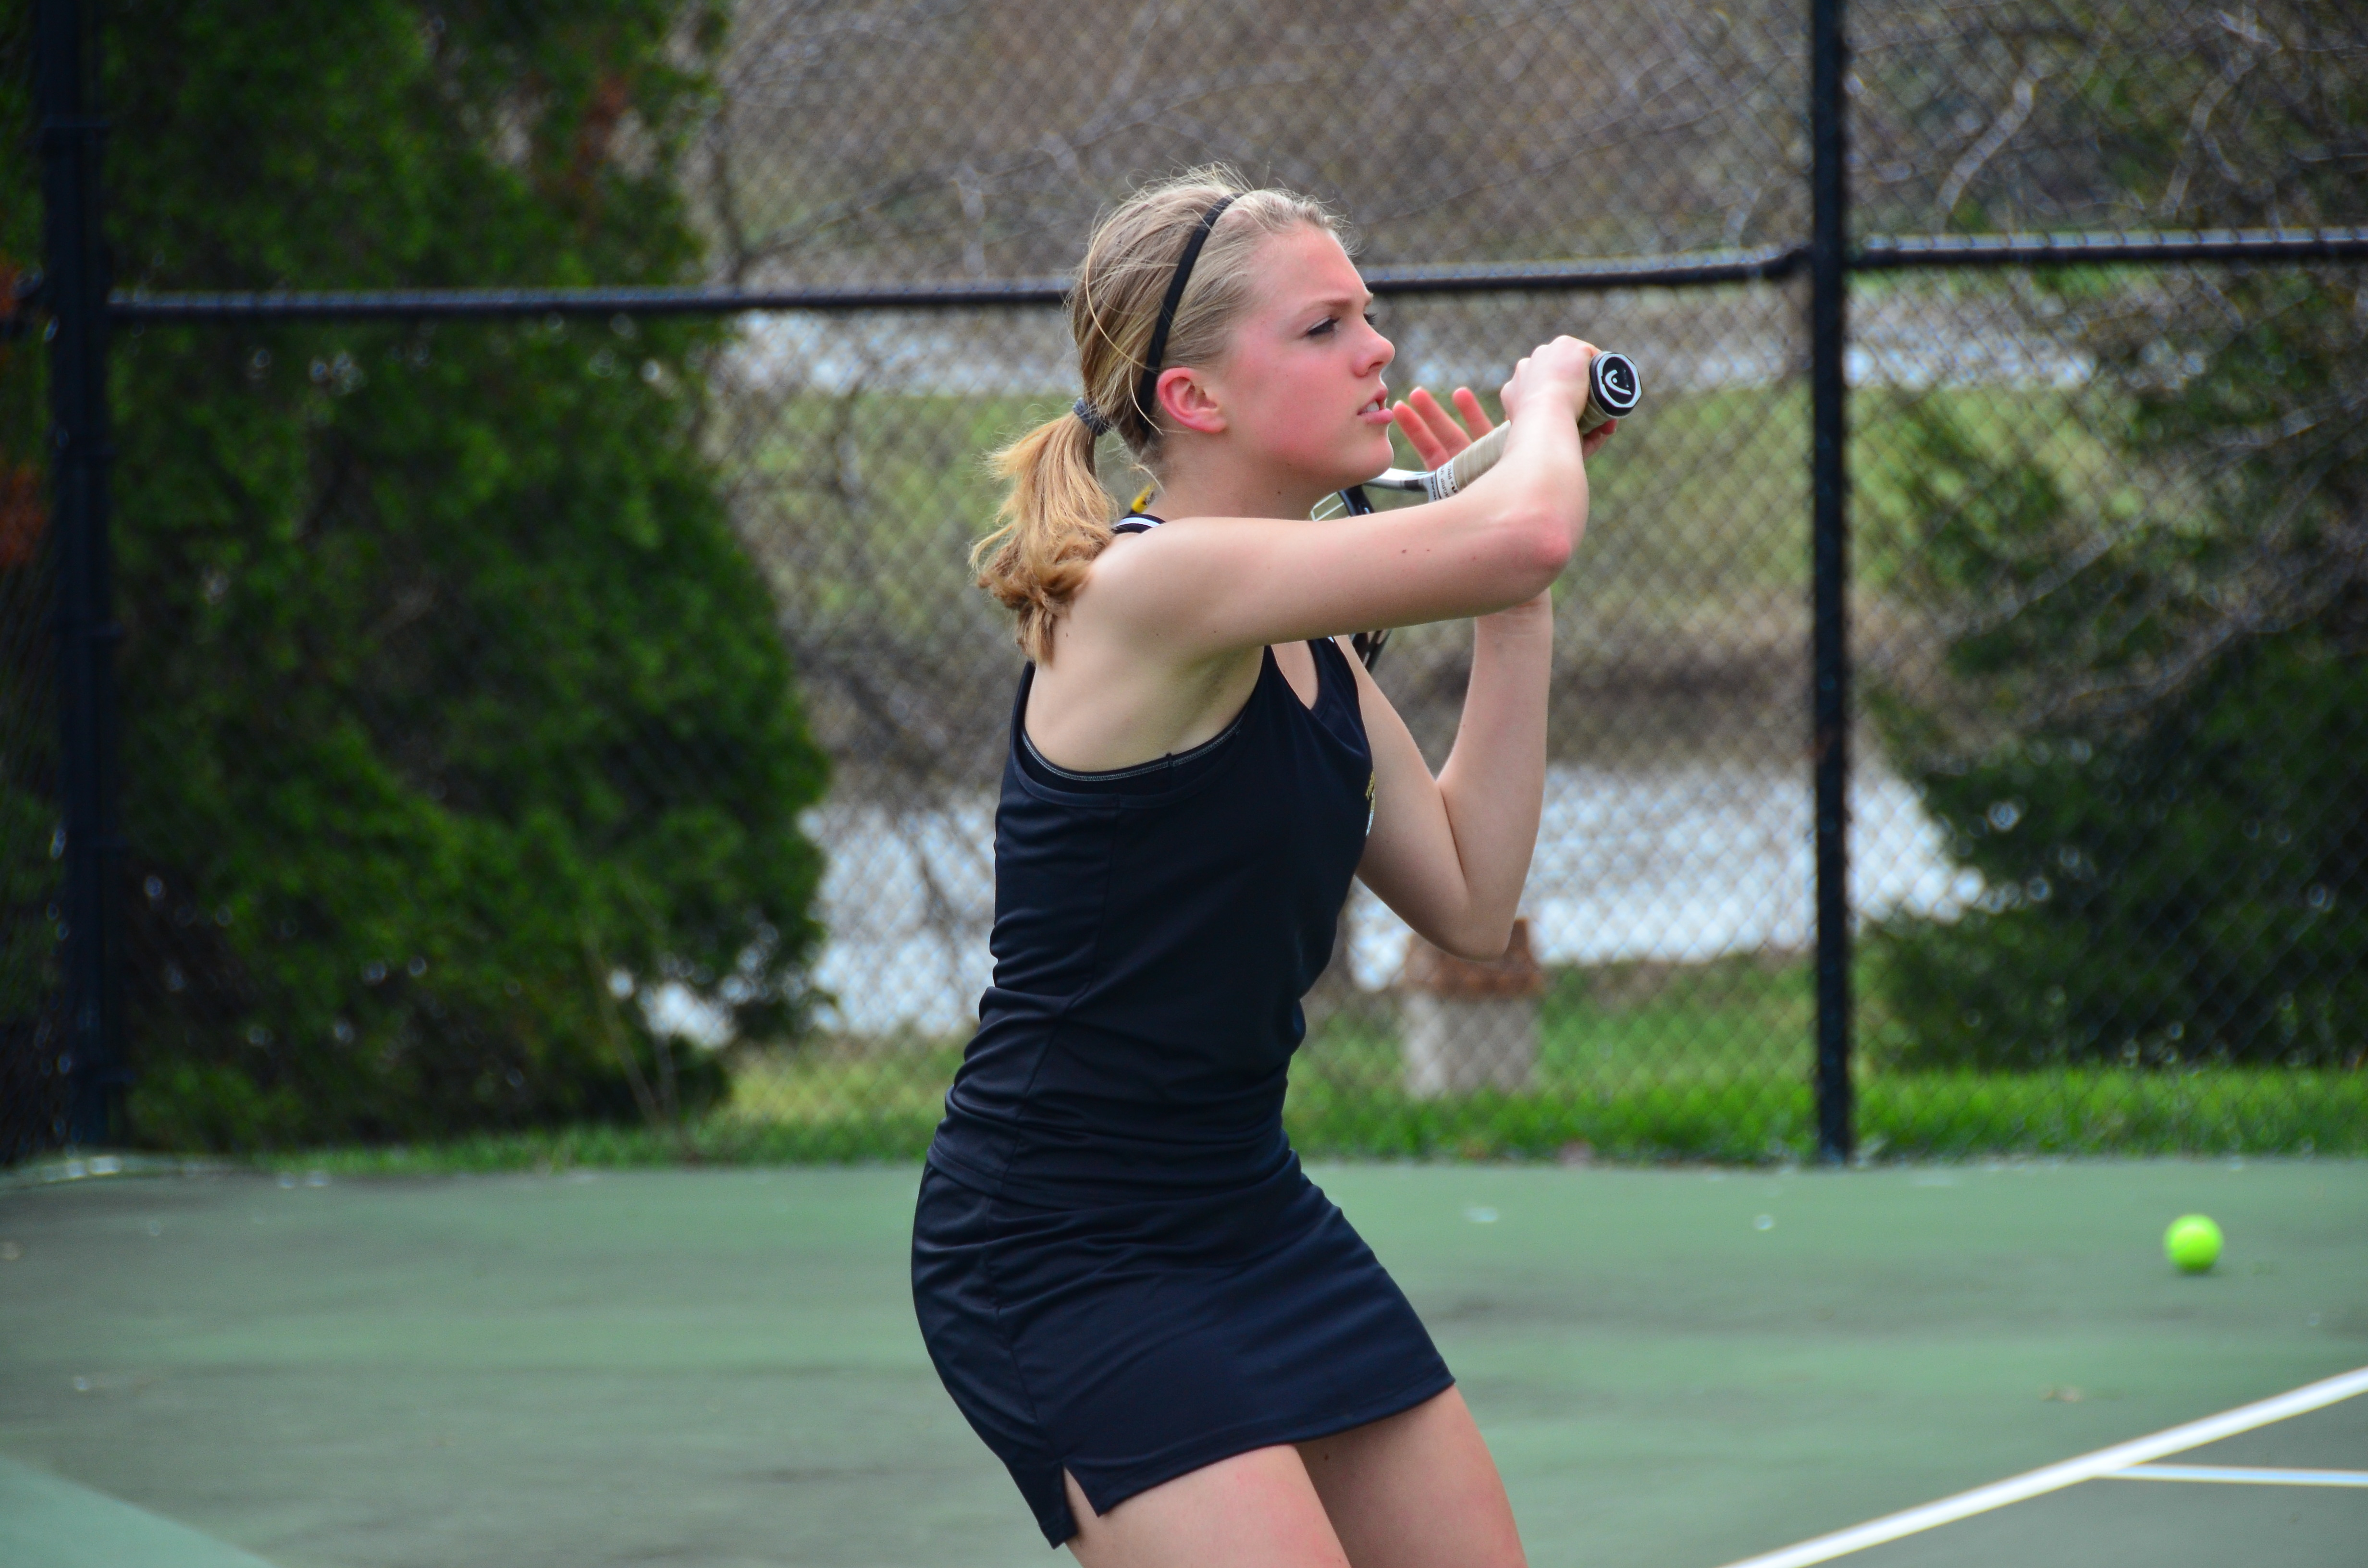 TIGER TENNIS AND FITNESS PROGRAMS